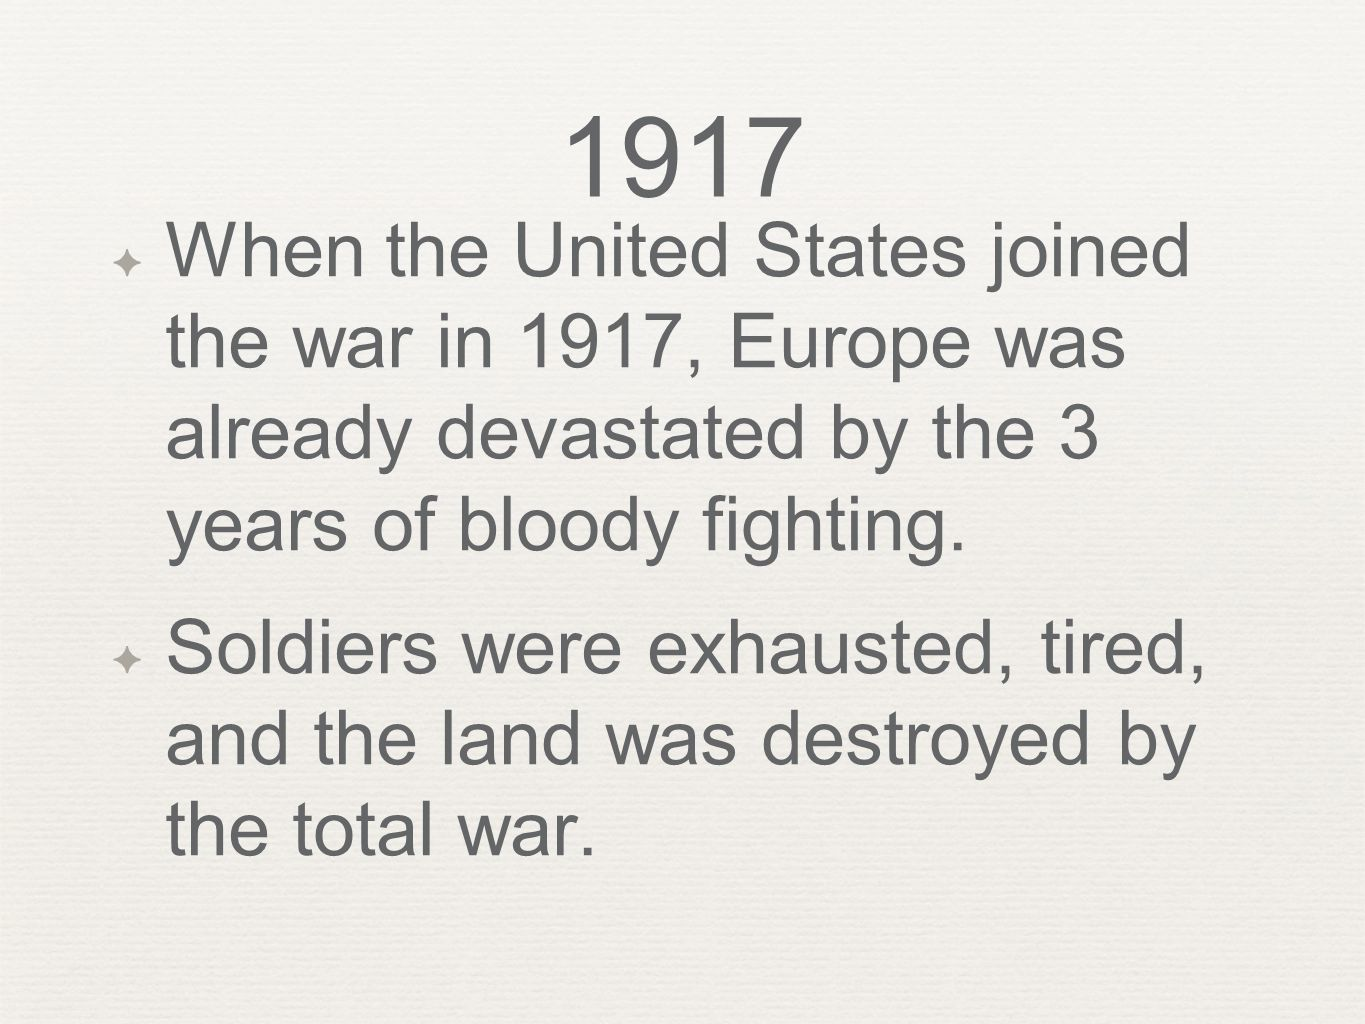 1917 When the United States joined the war in 1917, Europe was already devastated by the 3 years of bloody fighting.